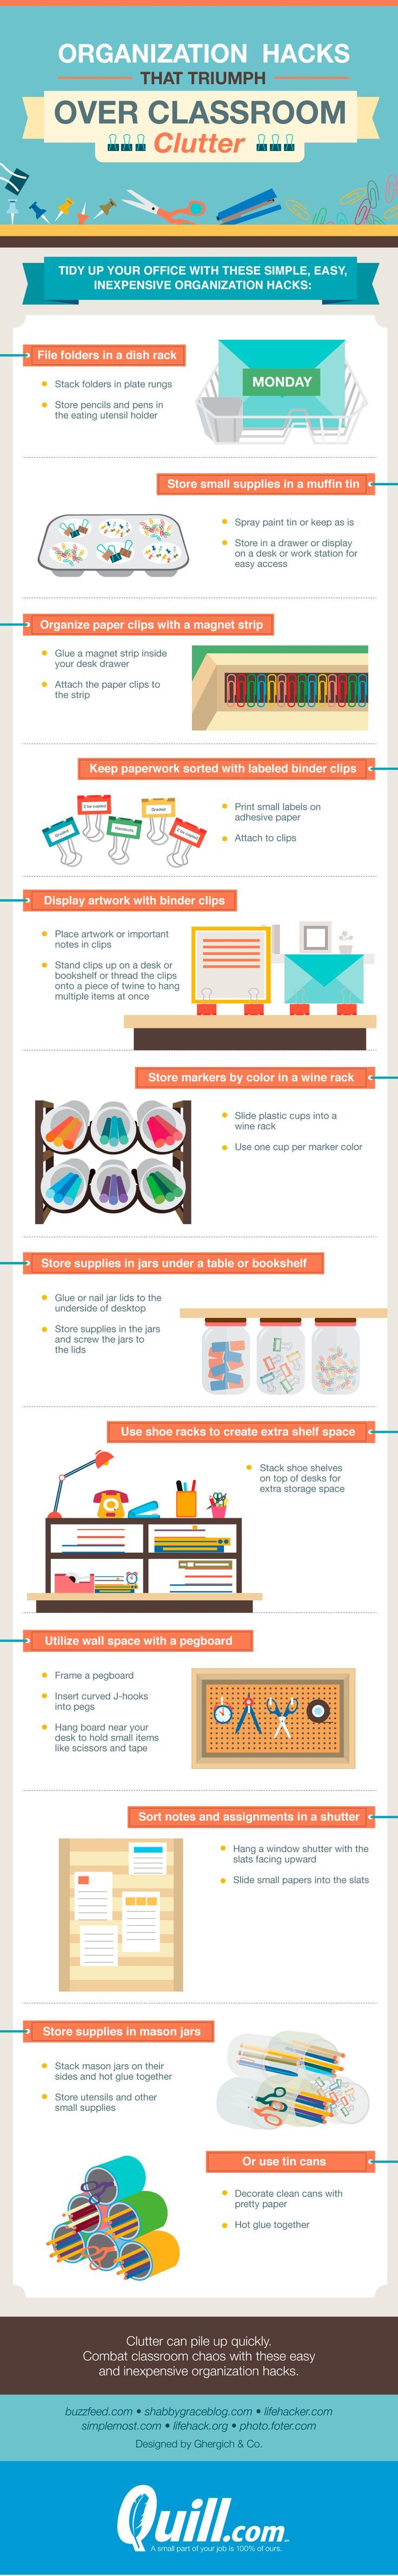 Clutter can definitely take over the classroom quickly. As teachers we have every color pen, pencils, folders, and paper for organization. We color code and label everything. Before long all these awesome tools start getting disorganized. Here are some great ideas from Quill for you to get control of the classroom. Brought to you by …